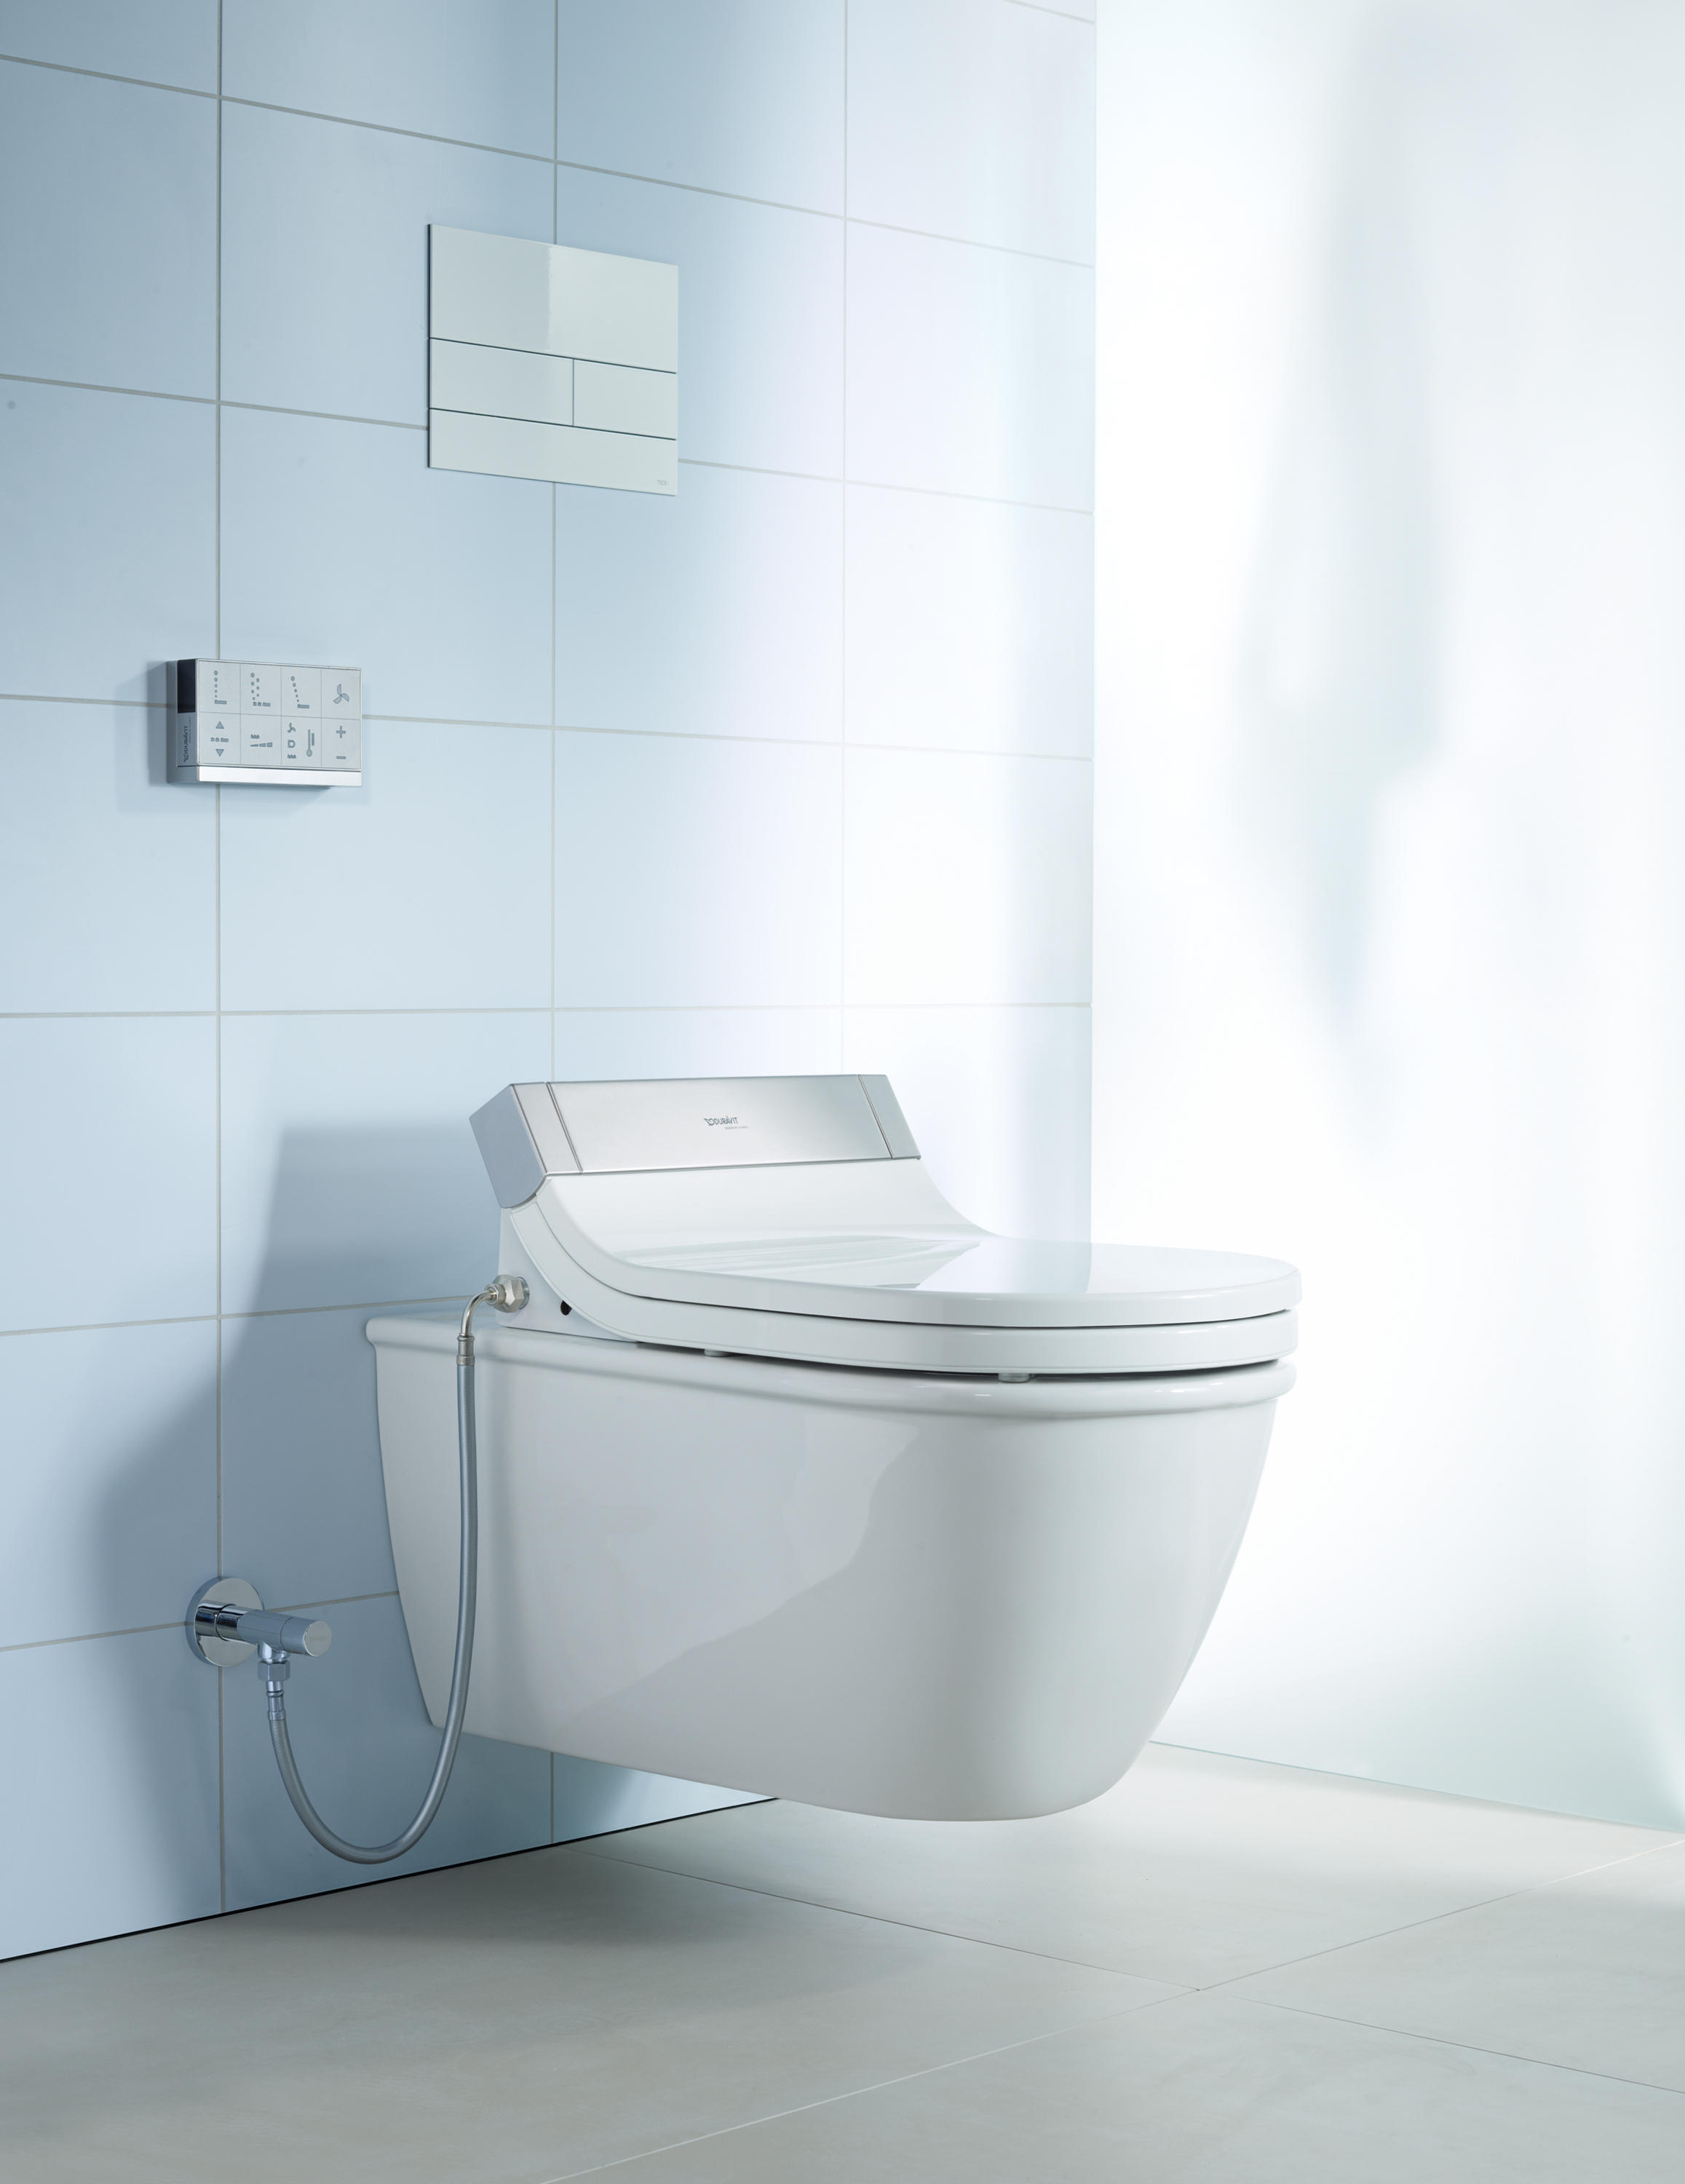 starck 3 bidet bidets from duravit architonic. Black Bedroom Furniture Sets. Home Design Ideas